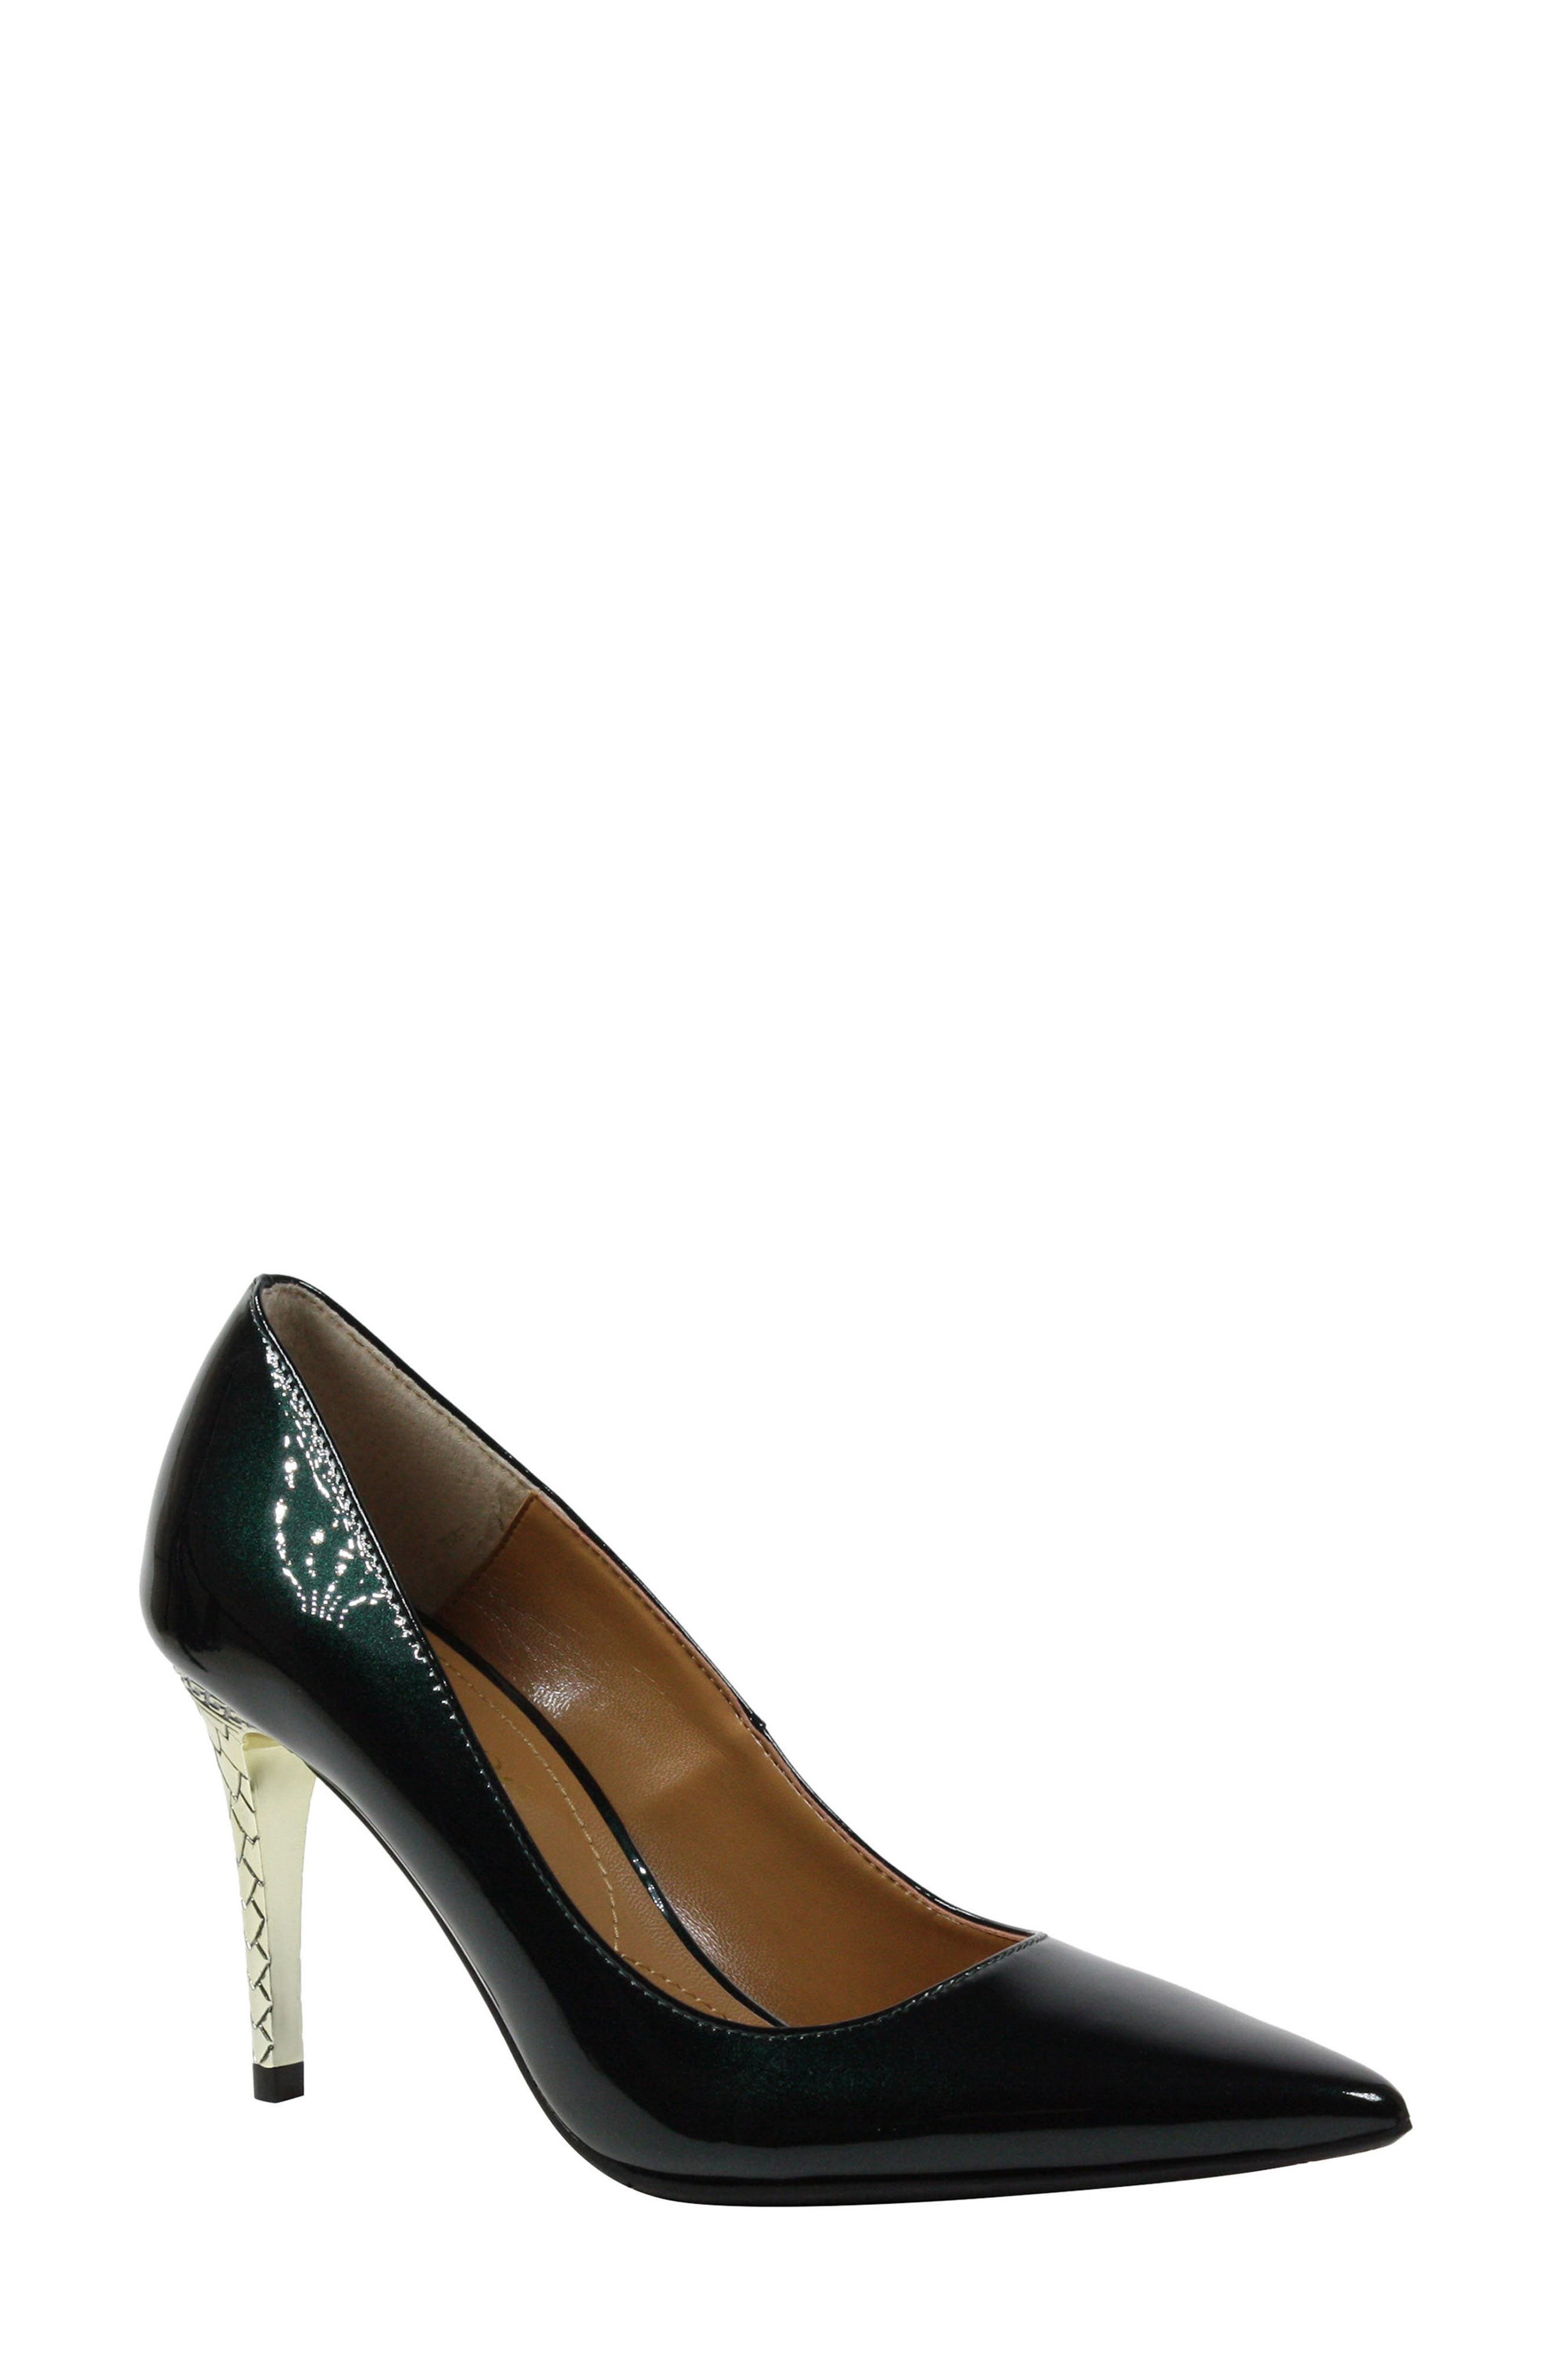 Main Image - J. Reneé 'Maressa' Pointy Toe Pump (Women)